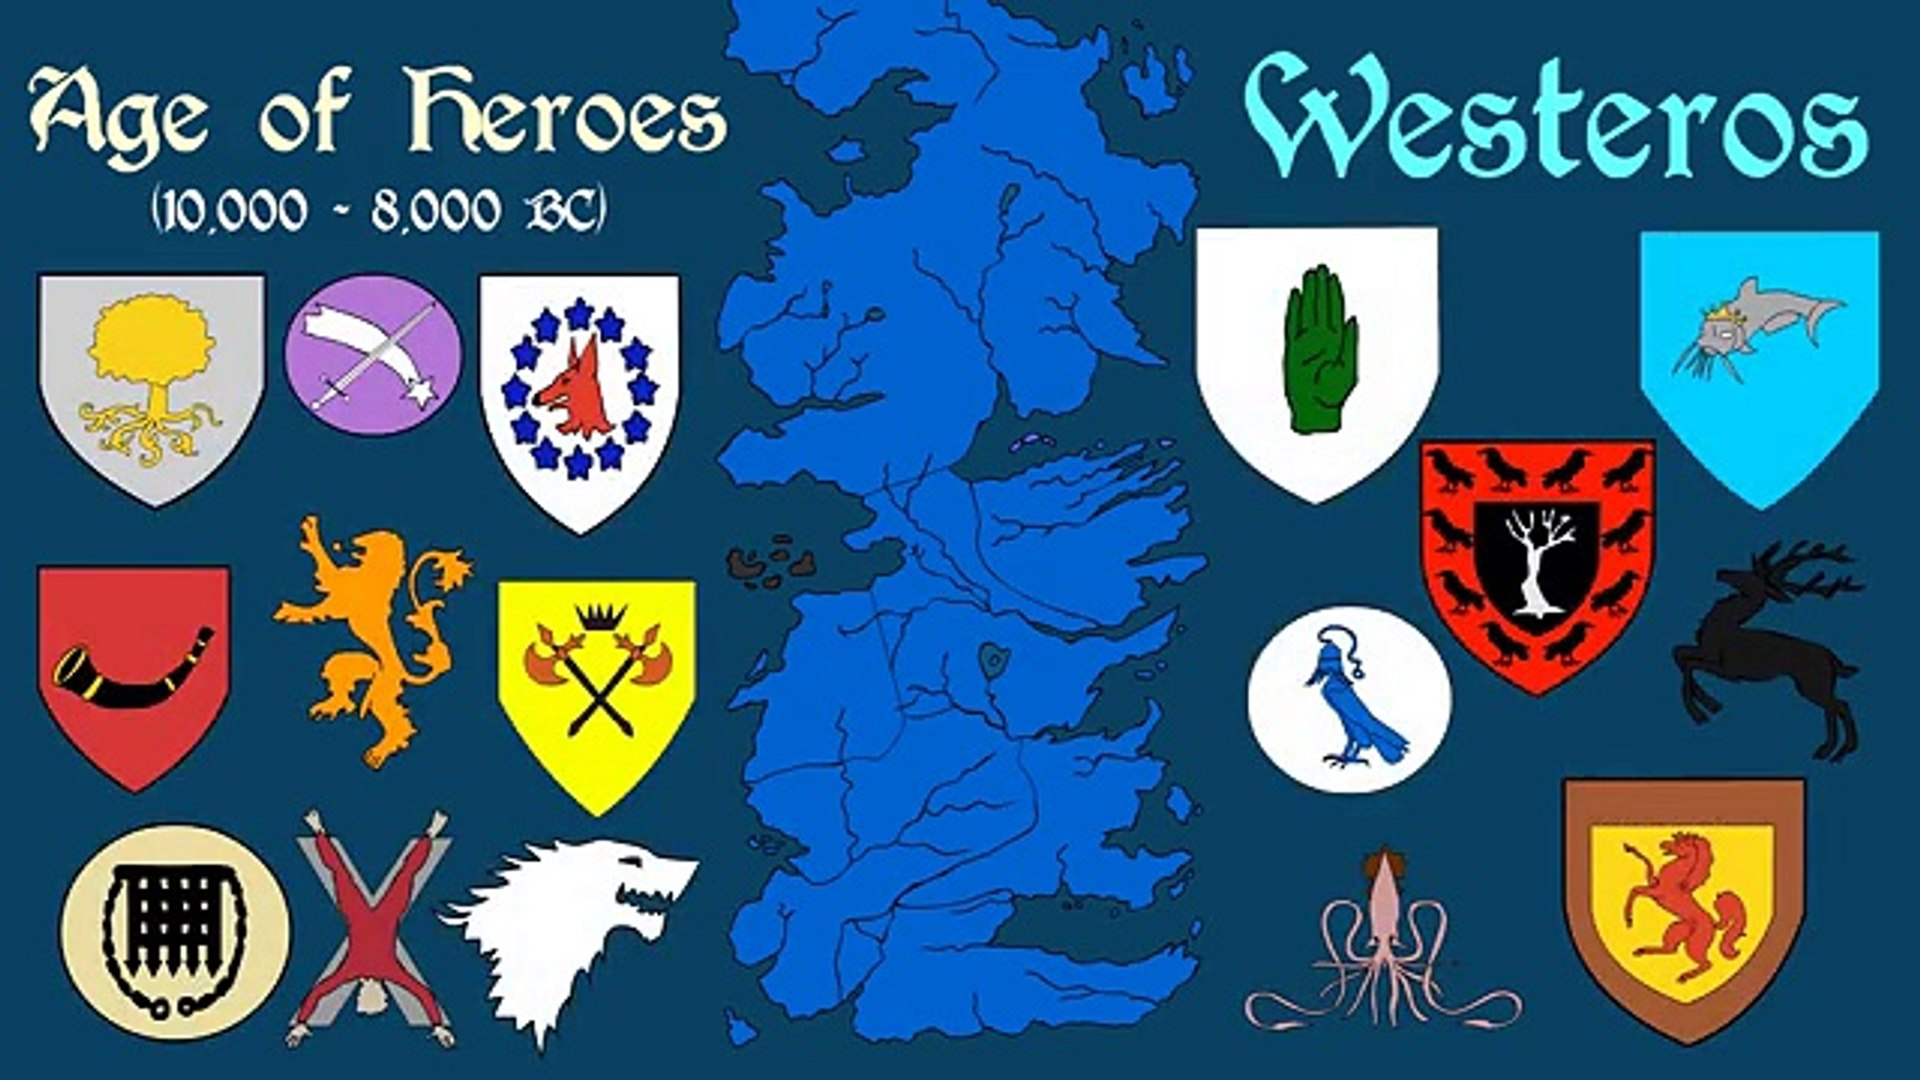 Westeros Karte Hd.Ancient Westeros Chapter Three The Age Of Heroes